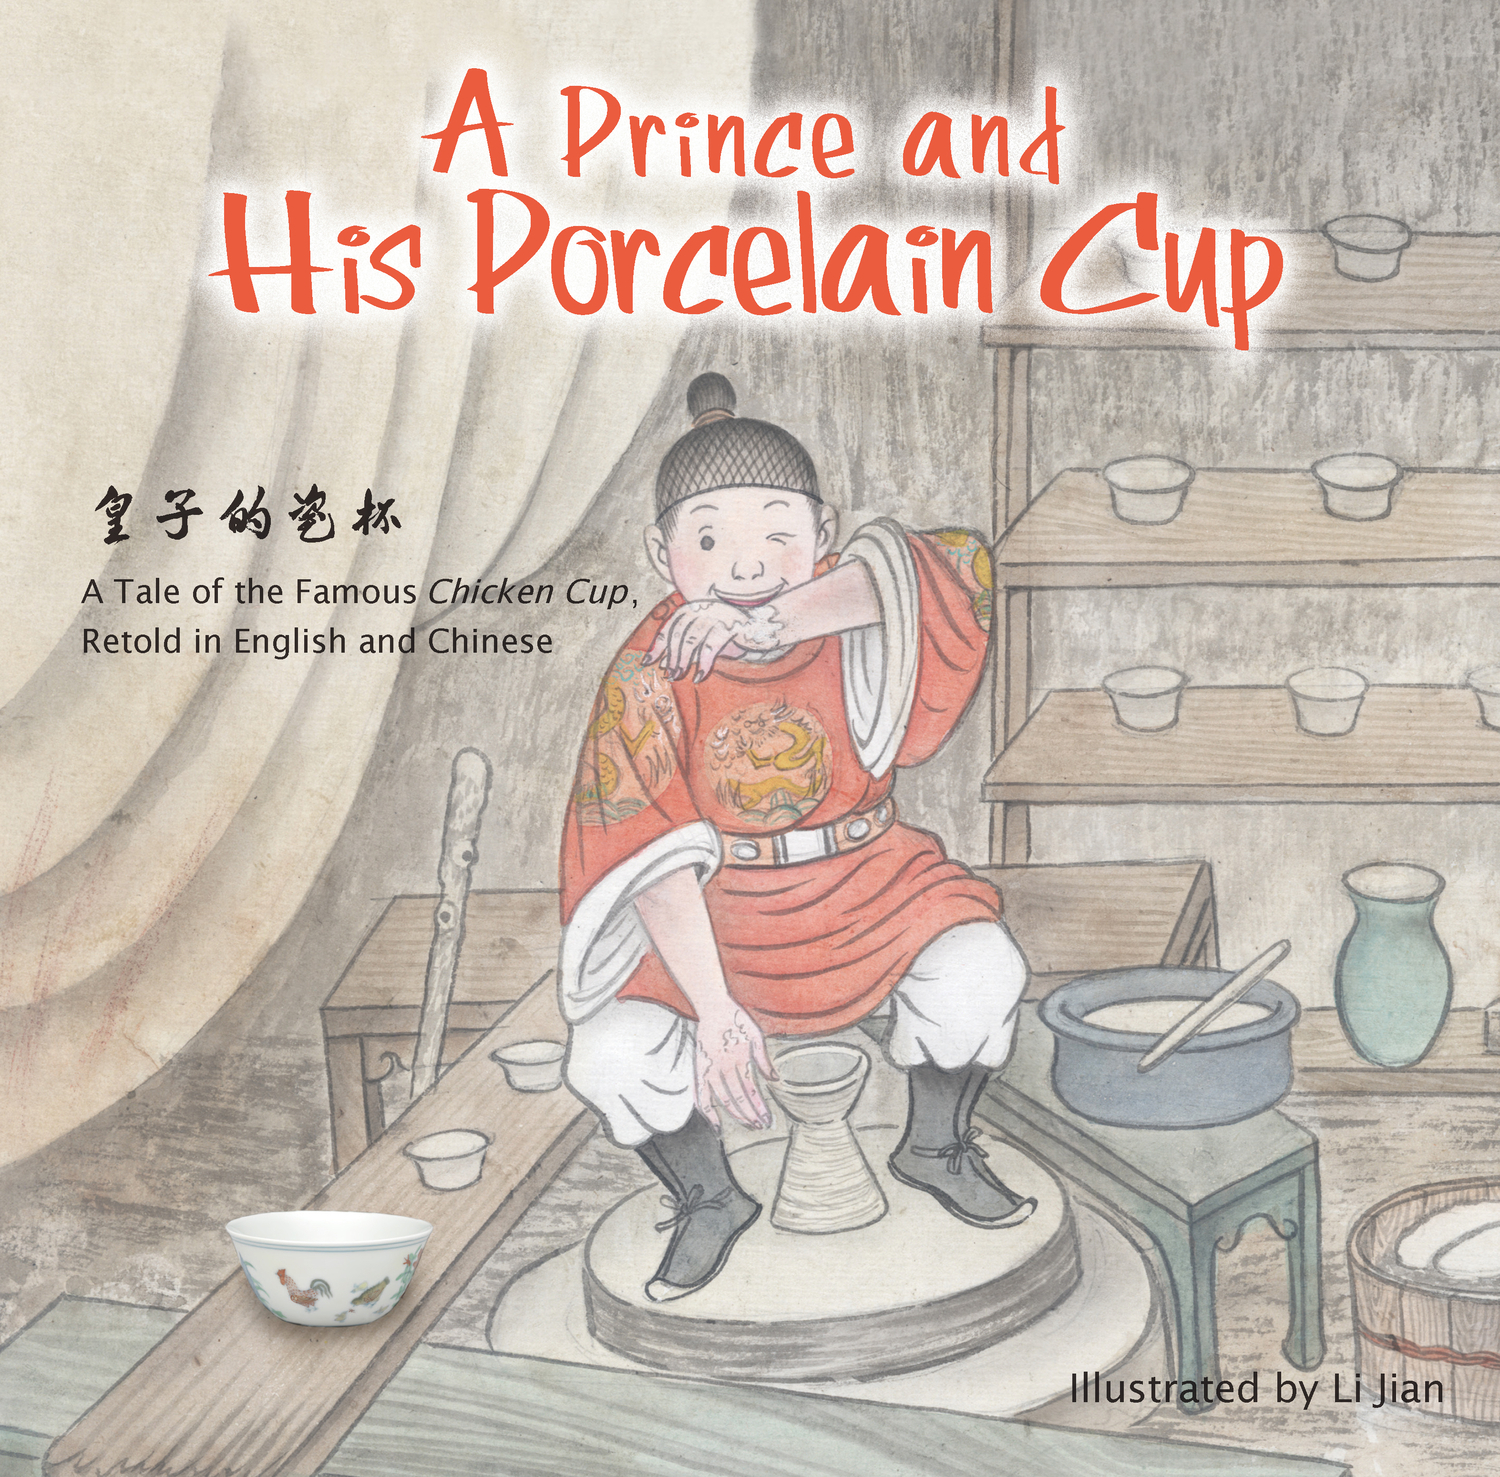 A Prince and His Porcelain Cup